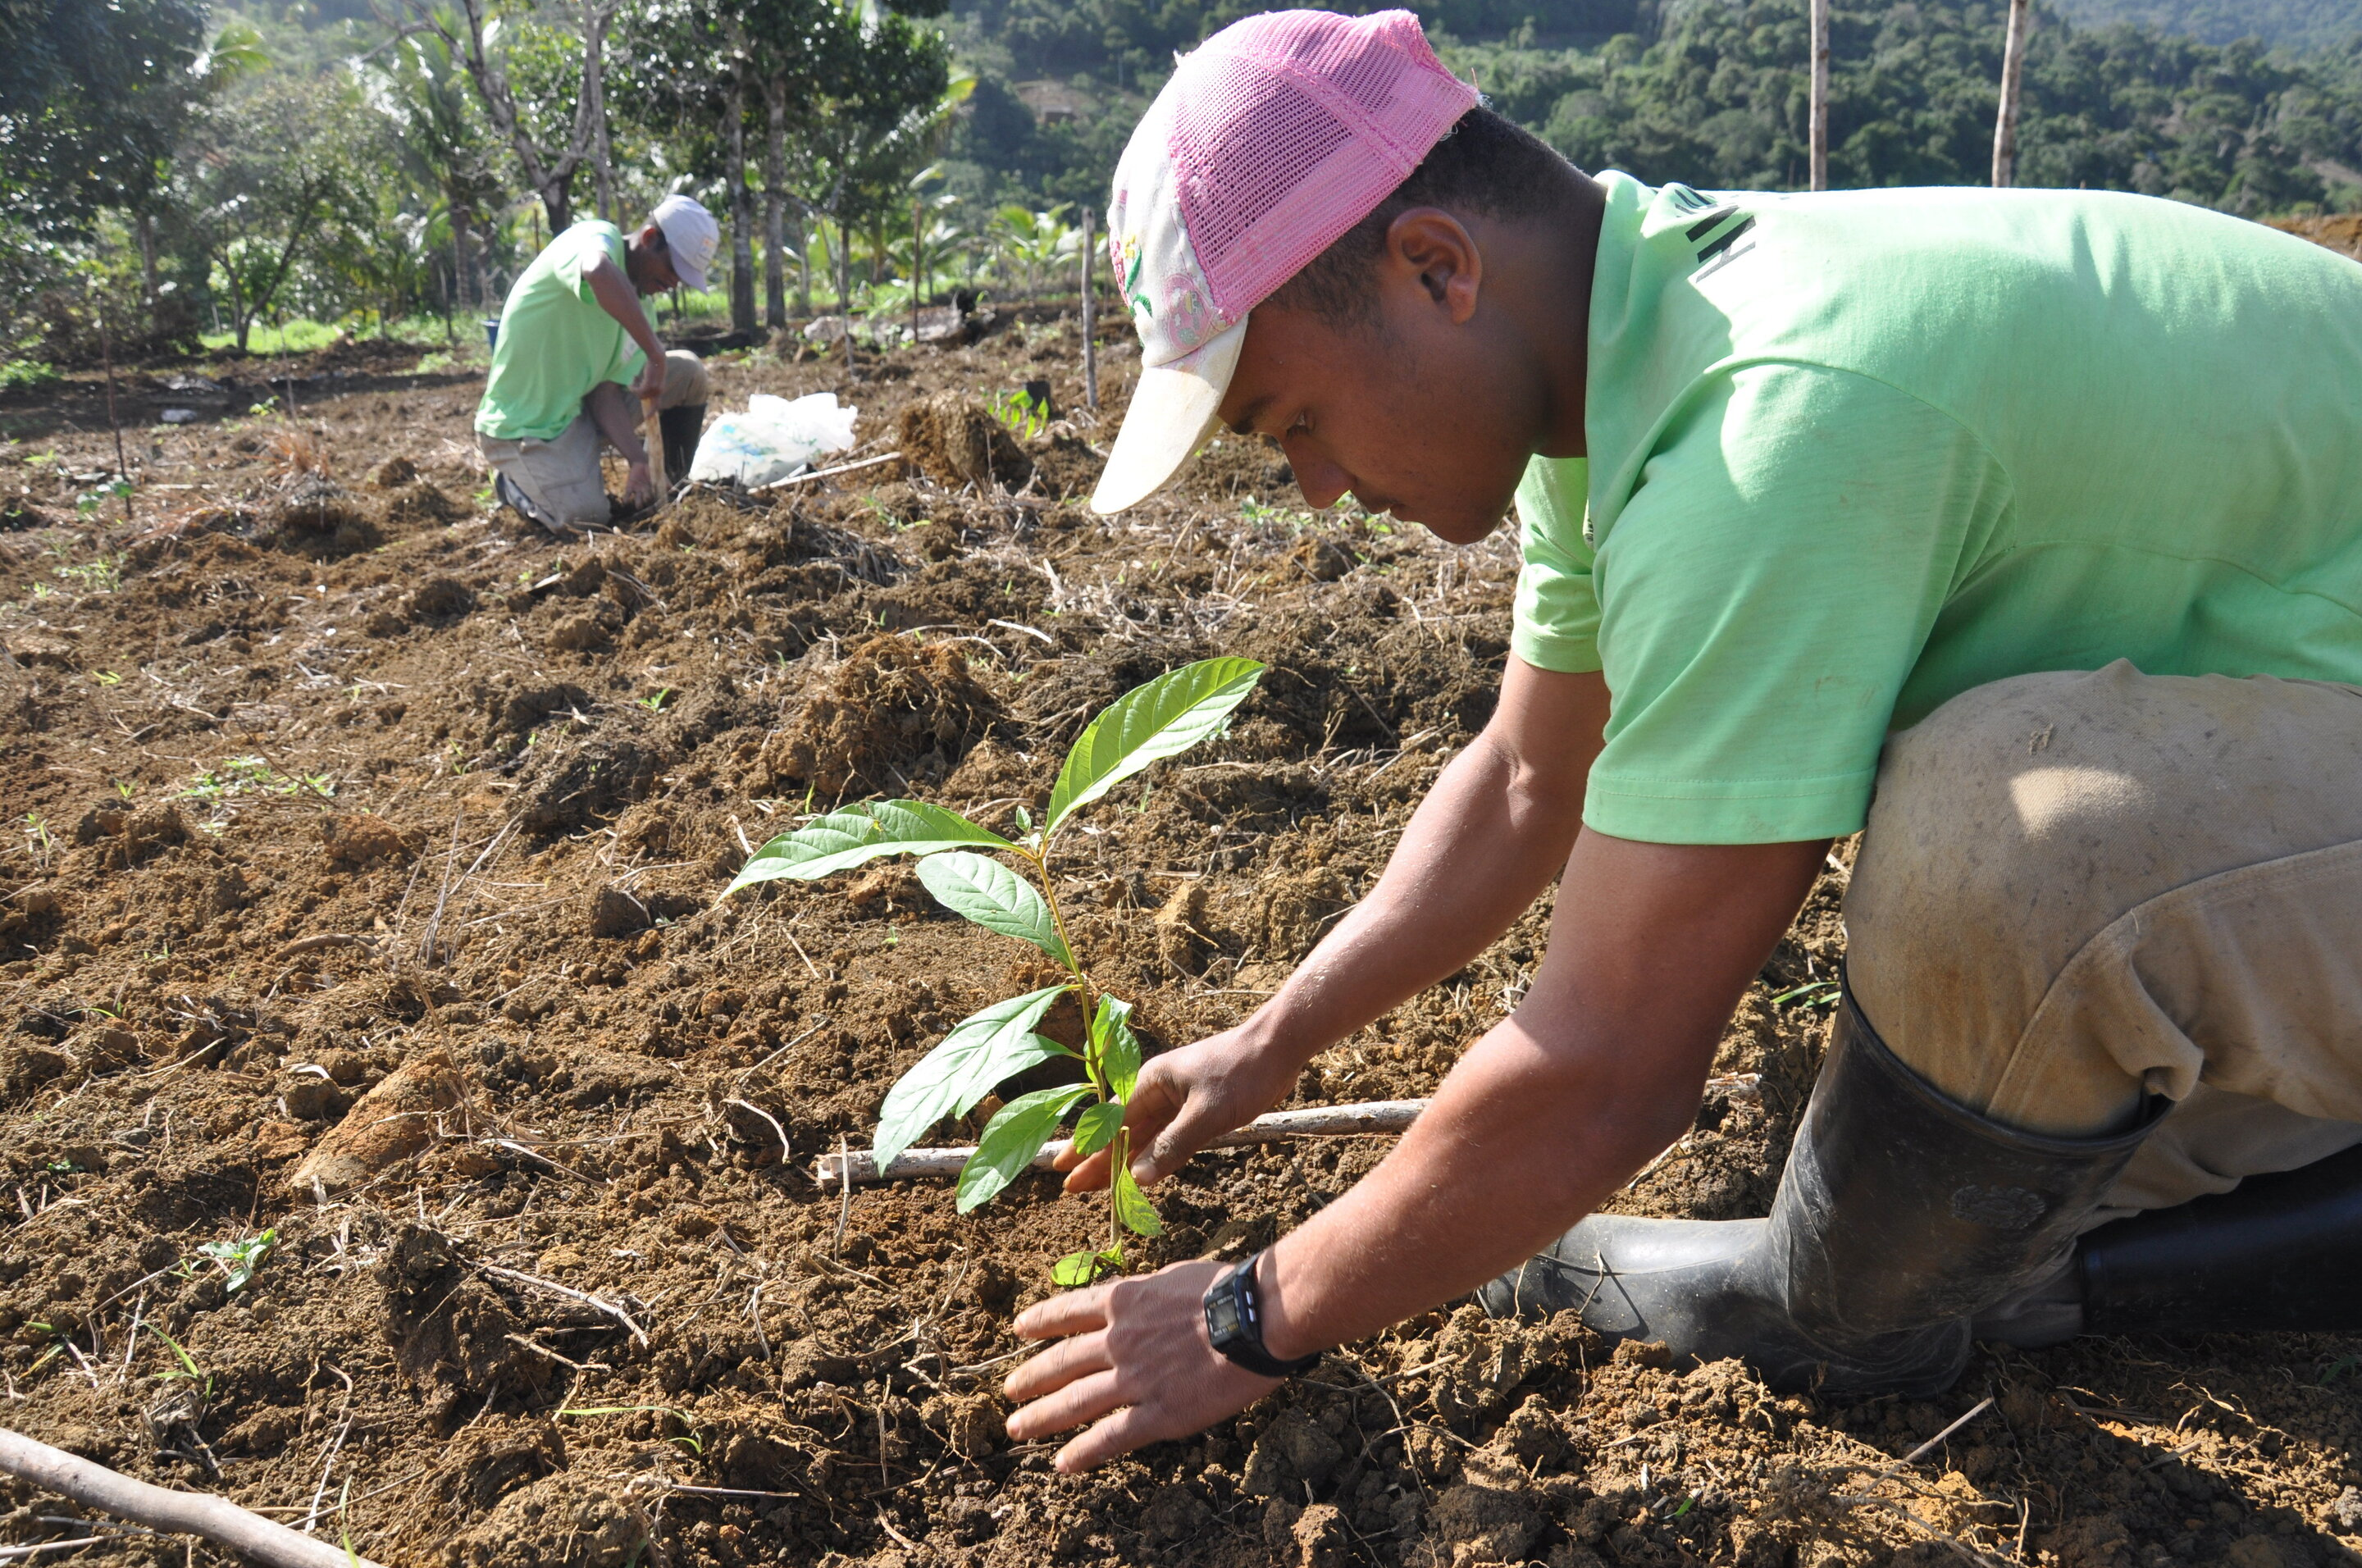 Planting trees is no panacea for climate change, ecologist writes ...